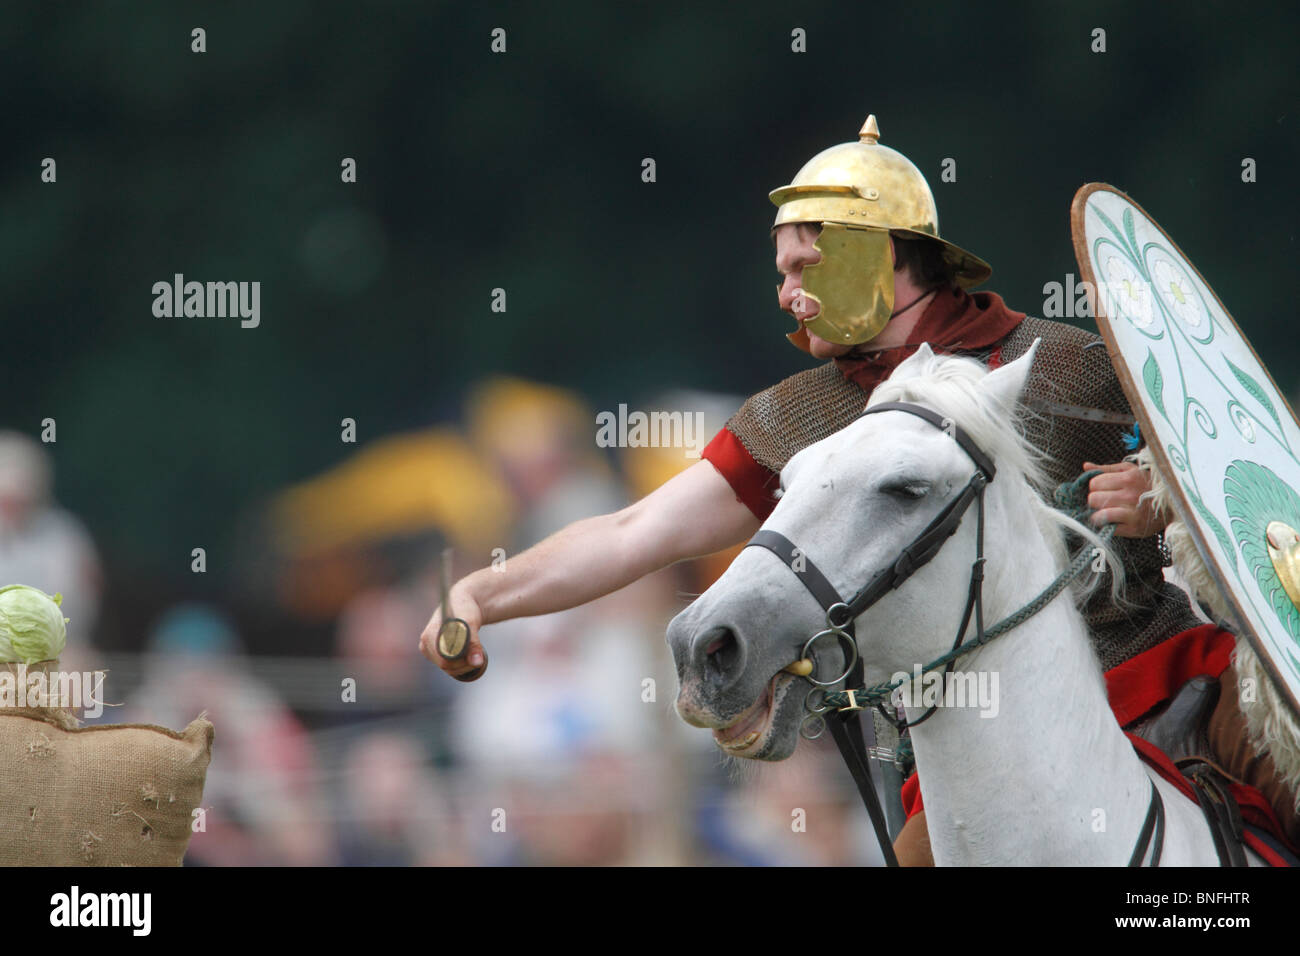 Roman auxiliary cavalryman practicing by chopping cabbage on the gallop Festival of History 2010, Kelmarsh Hall, - Stock Image